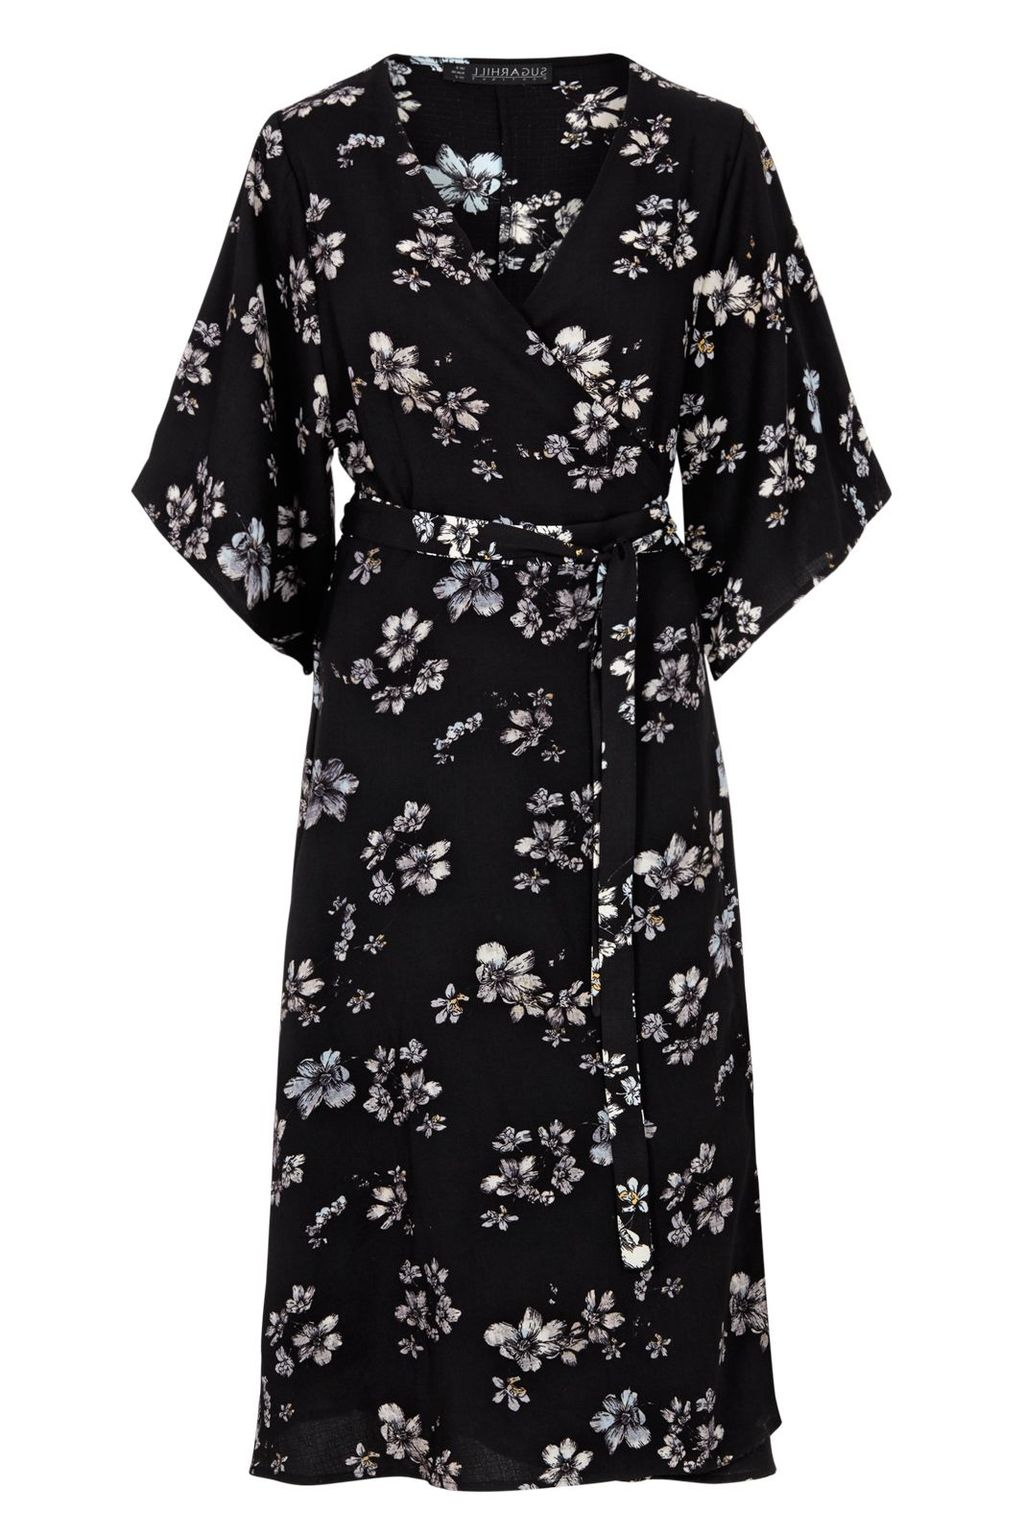 Neve Boho Wrap Dress, Black - style: faux wrap/wrap; length: below the knee; neckline: v-neck; fit: fitted at waist; sleeve style: kimono; predominant colour: black; fibres: polyester/polyamide - 100%; occasions: occasion, creative work; sleeve length: 3/4 length; pattern type: fabric; pattern size: big & busy; pattern: florals; texture group: other - light to midweight; season: s/s 2016; wardrobe: highlight